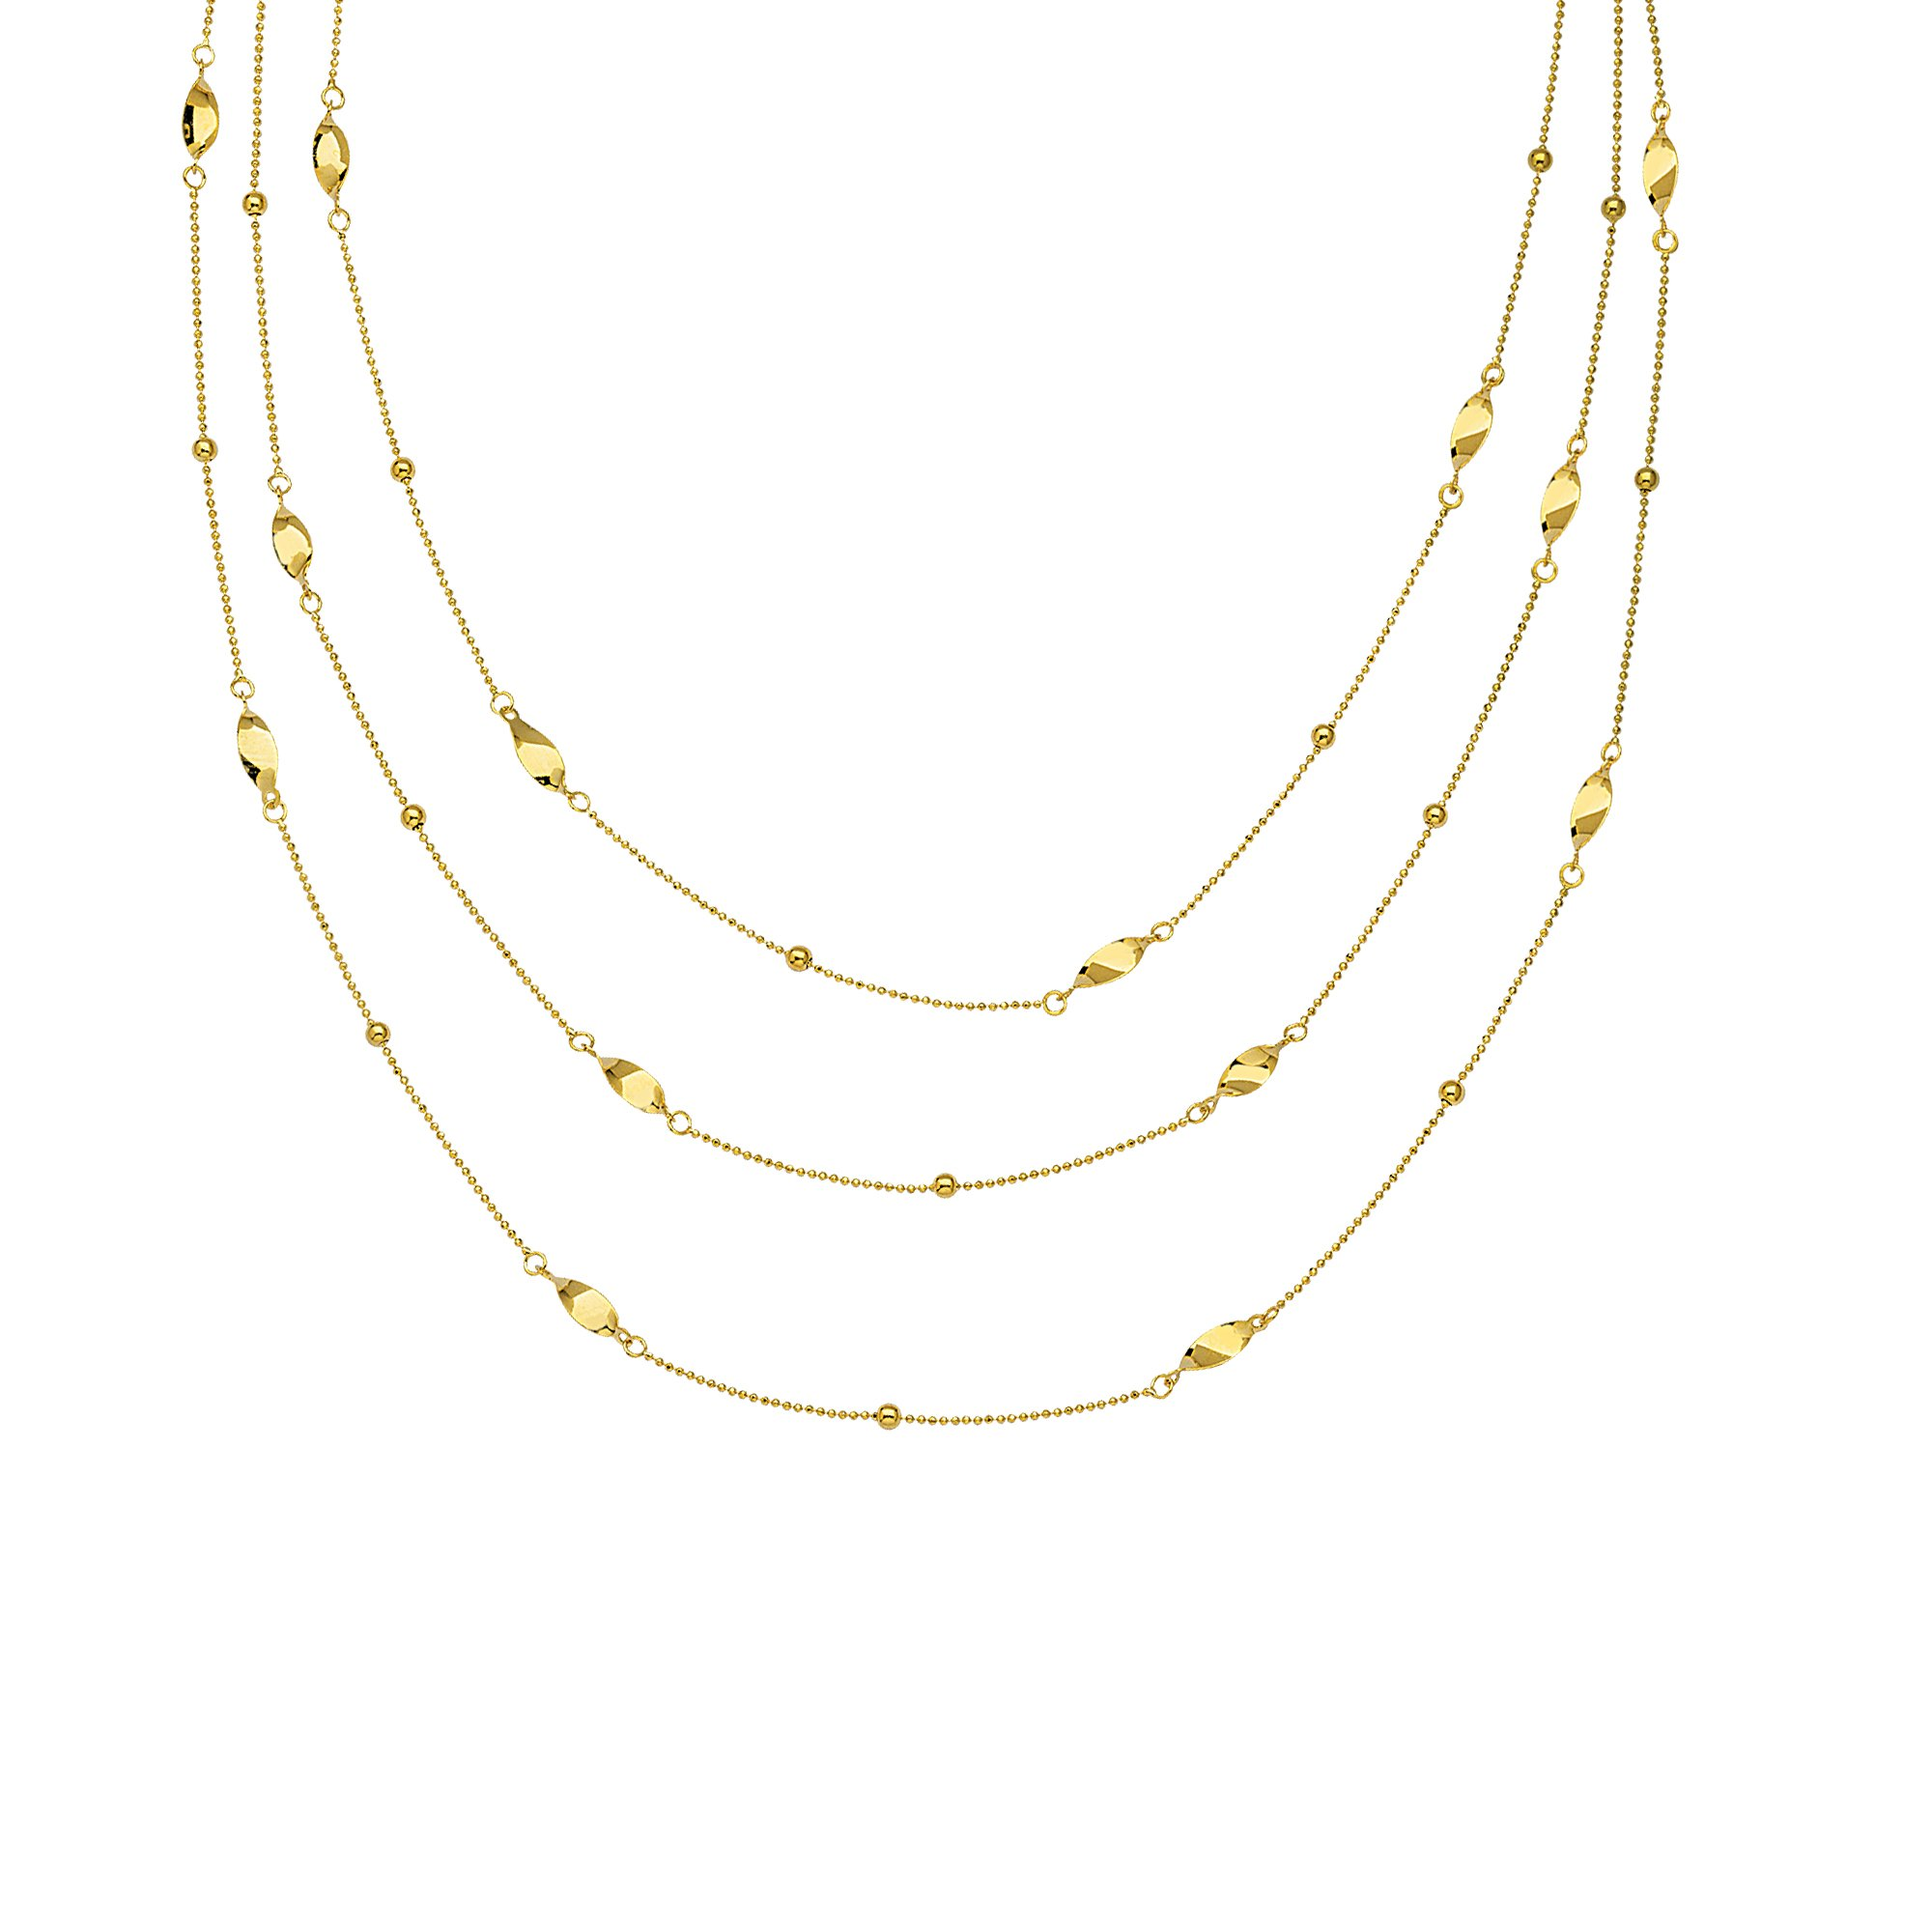 Three Layer Station Style Bib Necklace 14k Yellow Gold with Beads and Twists by AzureBella Jewelry